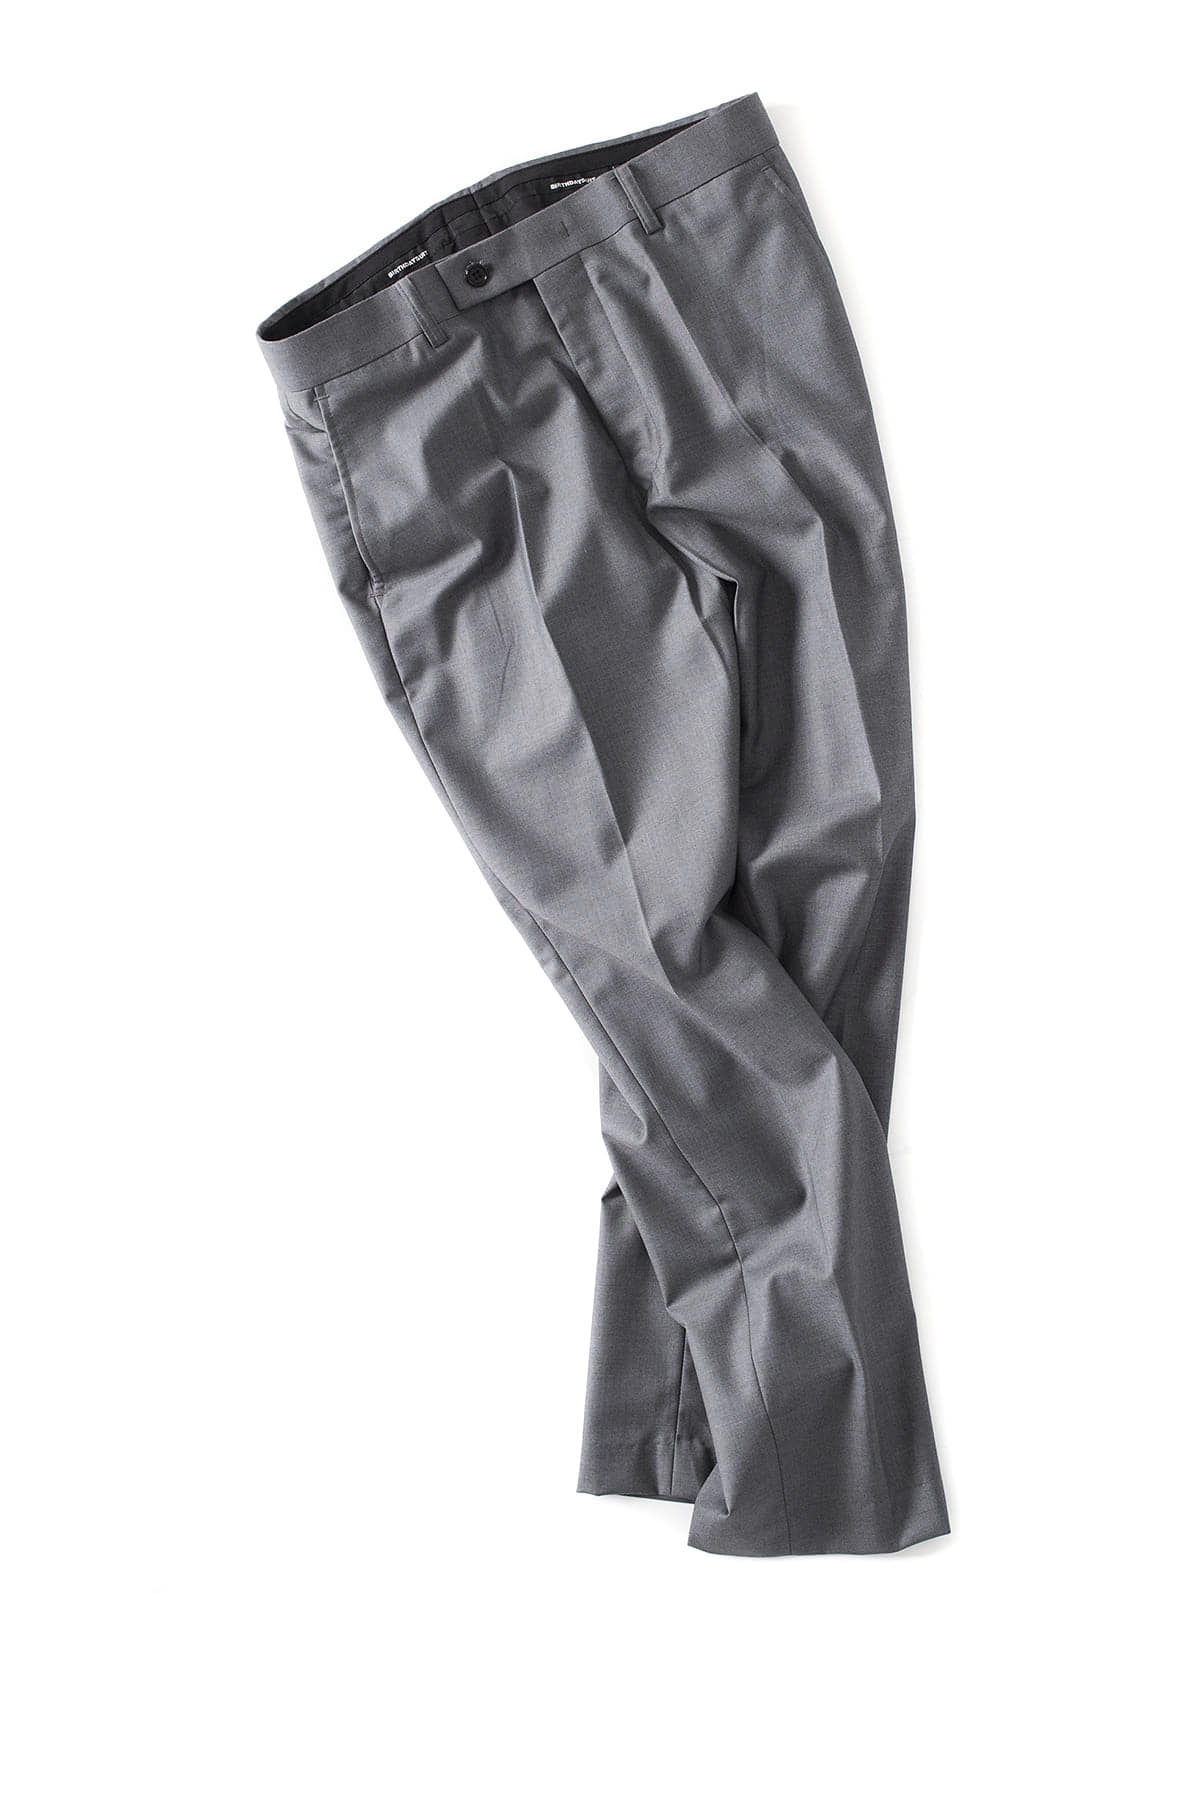 BIRTHDAYSUIT : Daily Suit Pants (Light Grey)